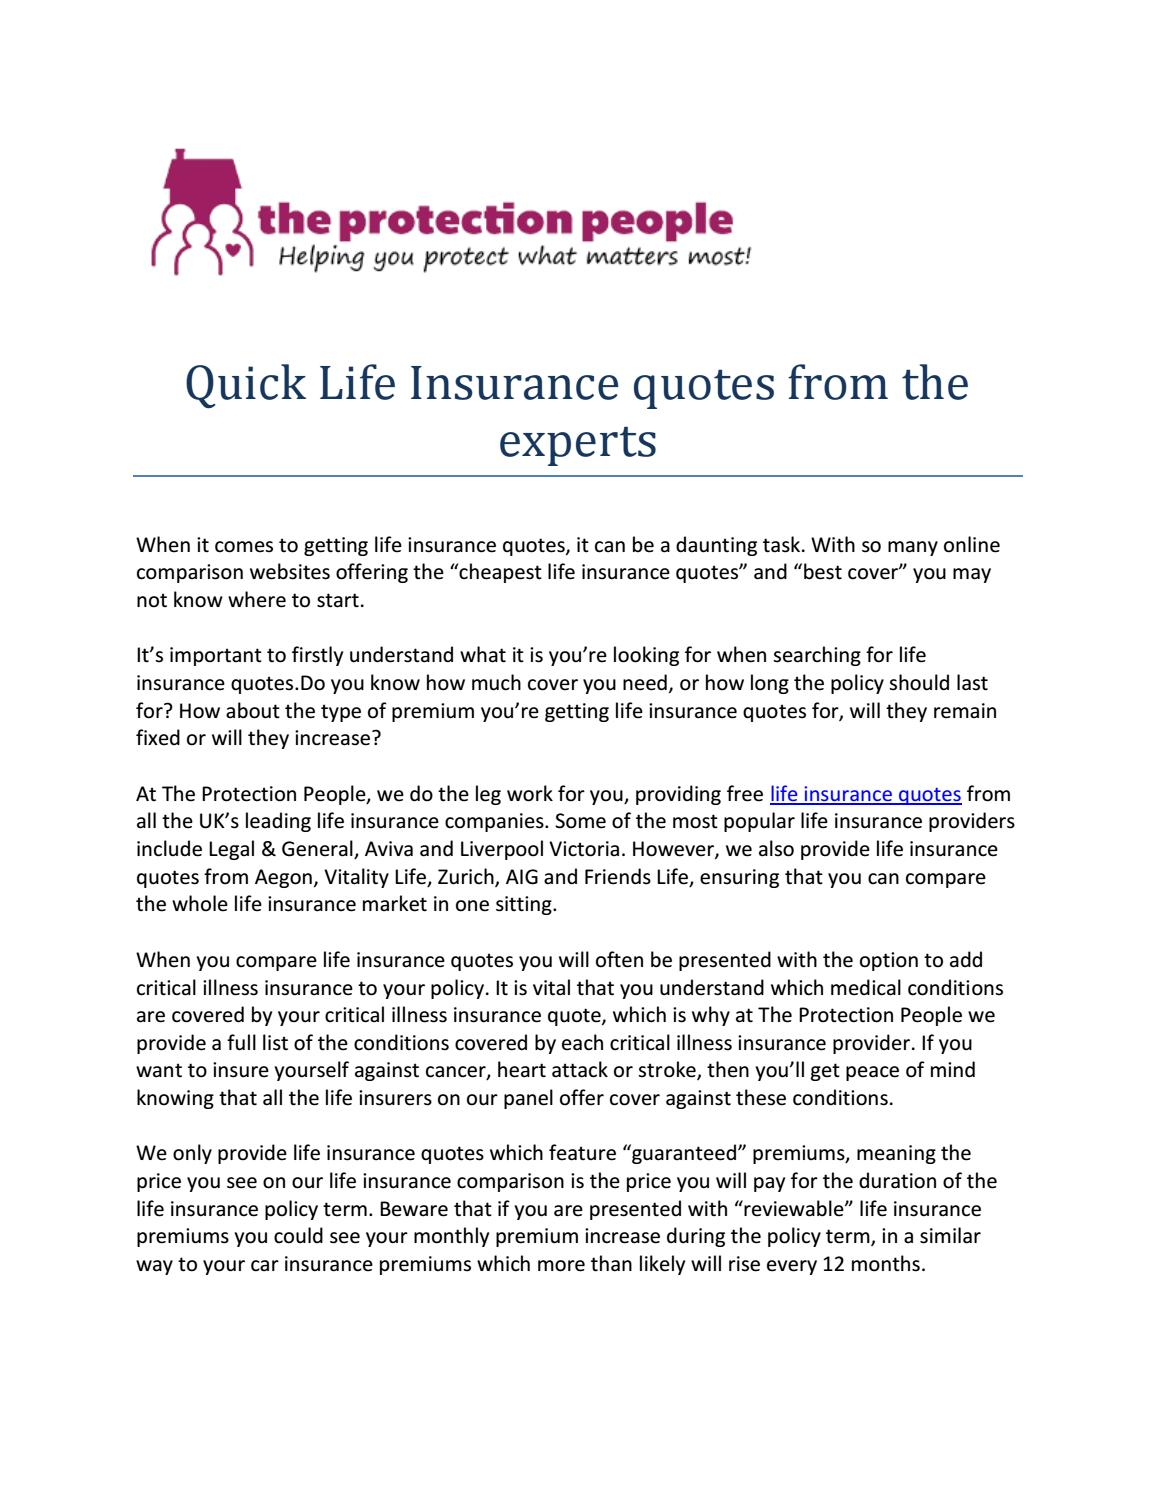 Life Insurance Quotes Comparison The Protection People  Quick Life Insurance Quotes From The